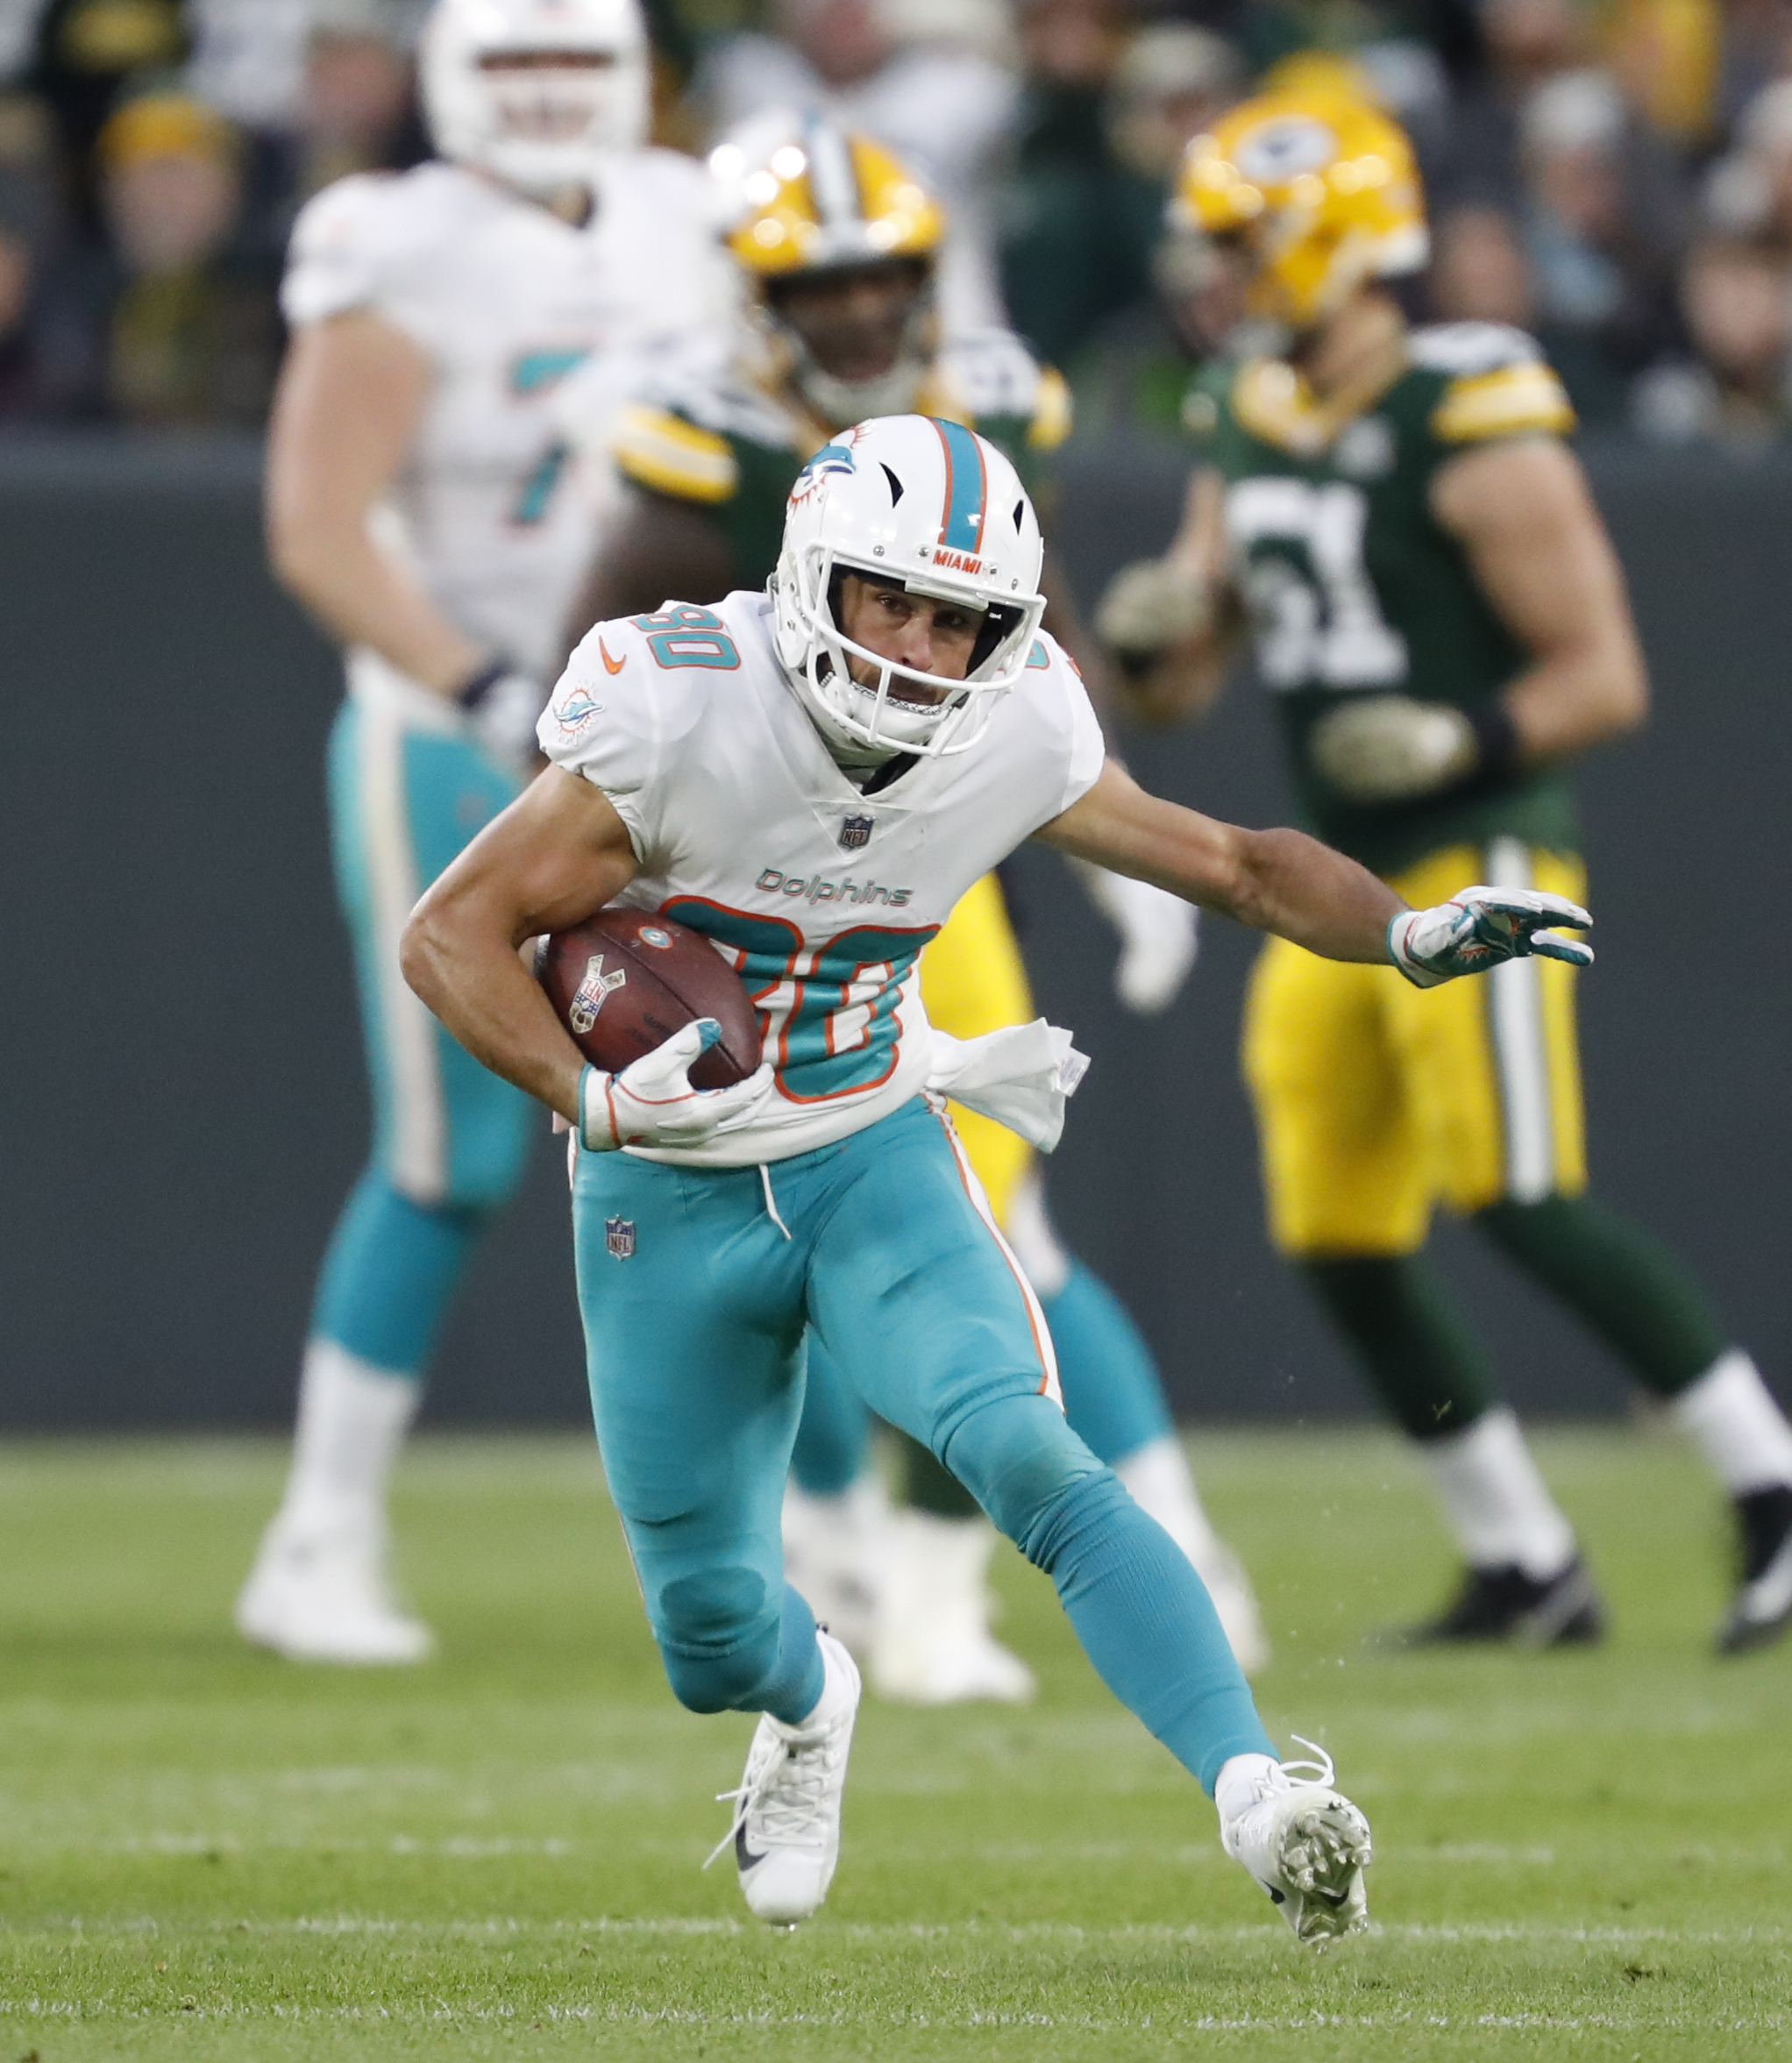 Lions sign WR Danny Amendola to fill Golden Tate's old role